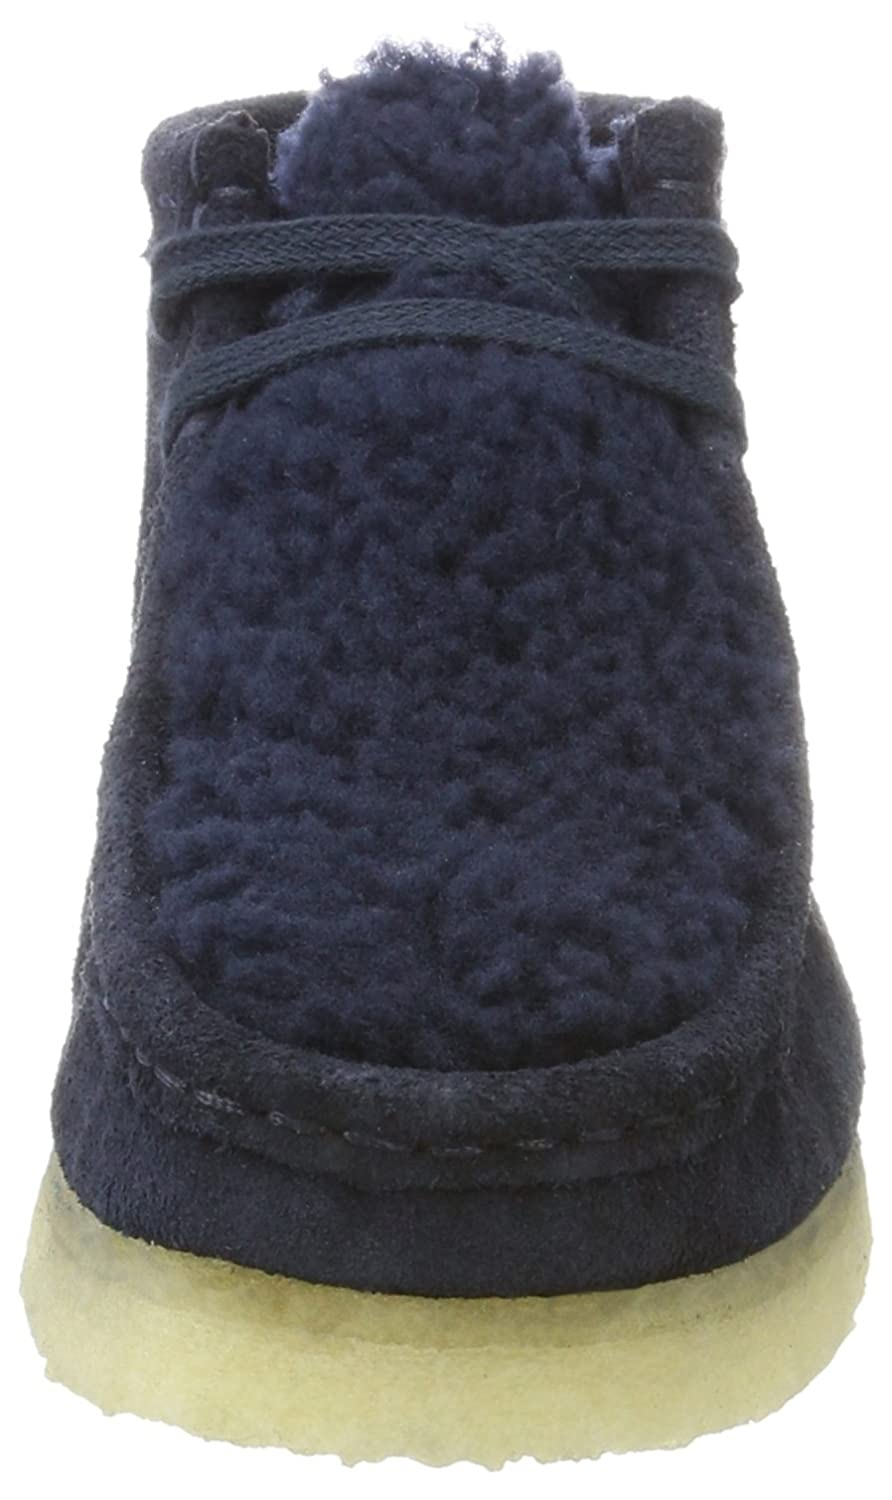 Clarks Originals Damen Wallabee Boot. Stiefel Blau Blau Blau (Navy Suede) 32149b